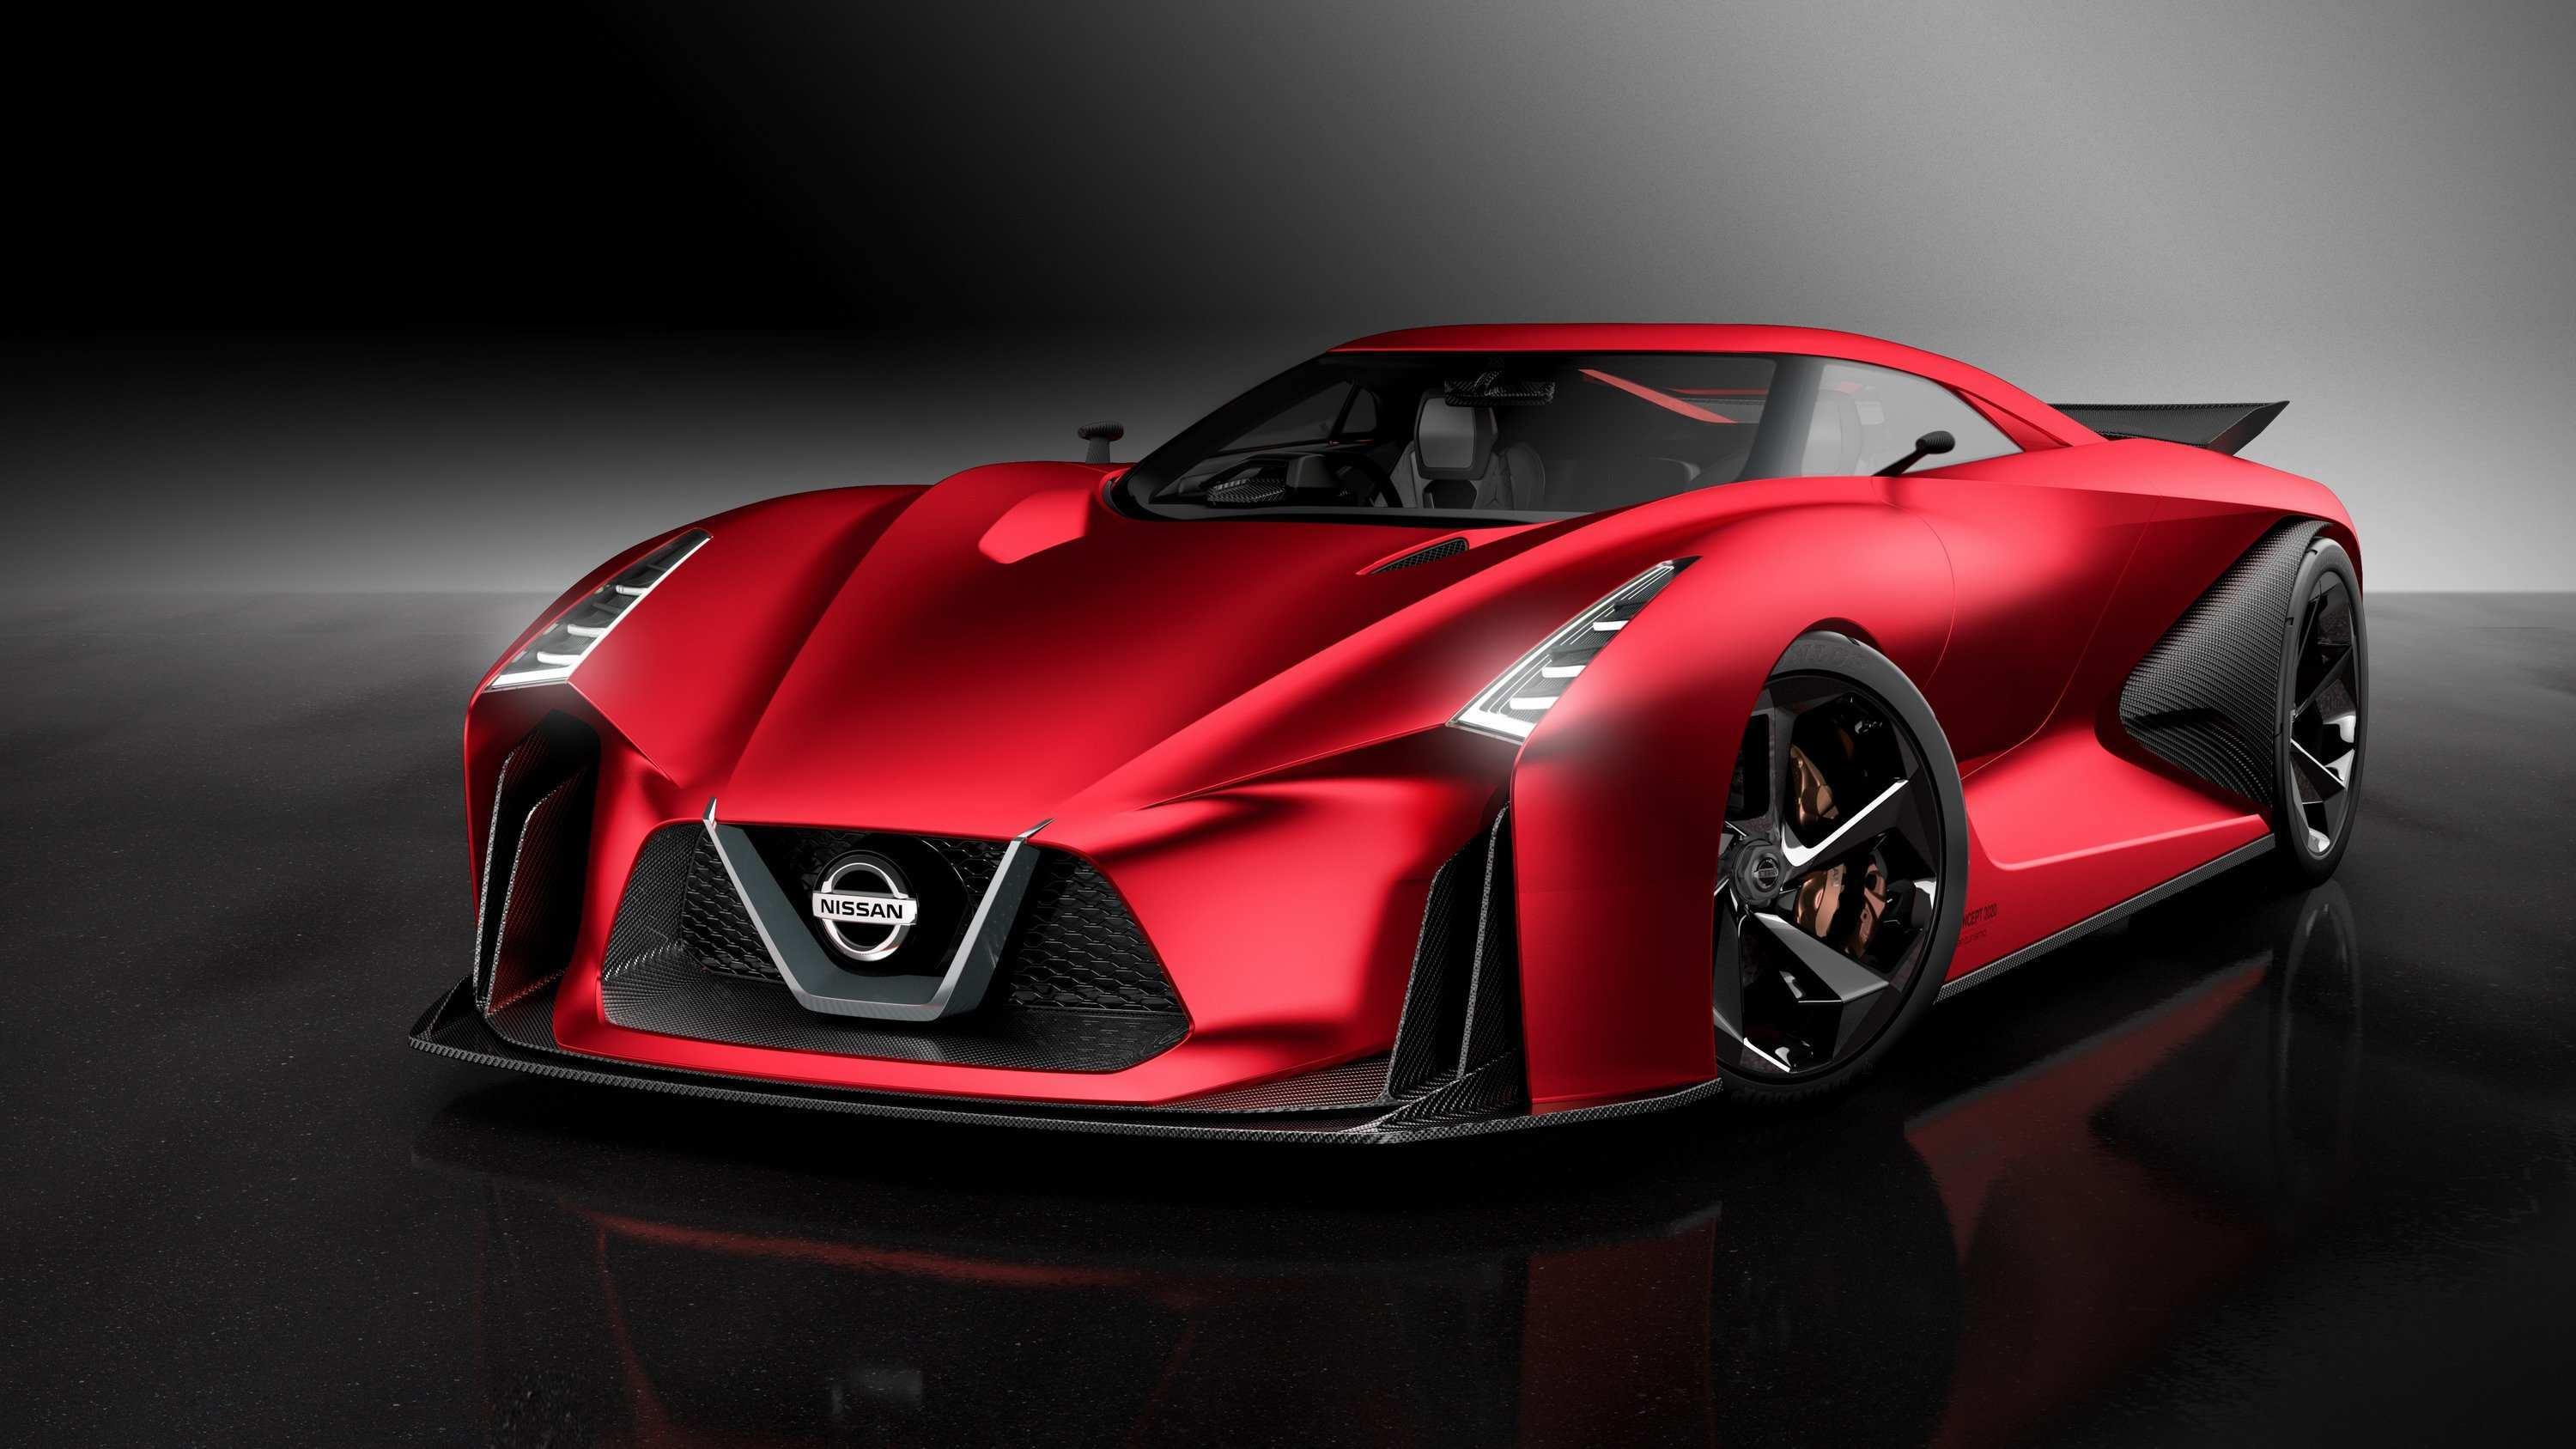 57 Best Review Nissan Gtr 2020 Price Exterior for Nissan Gtr 2020 Price